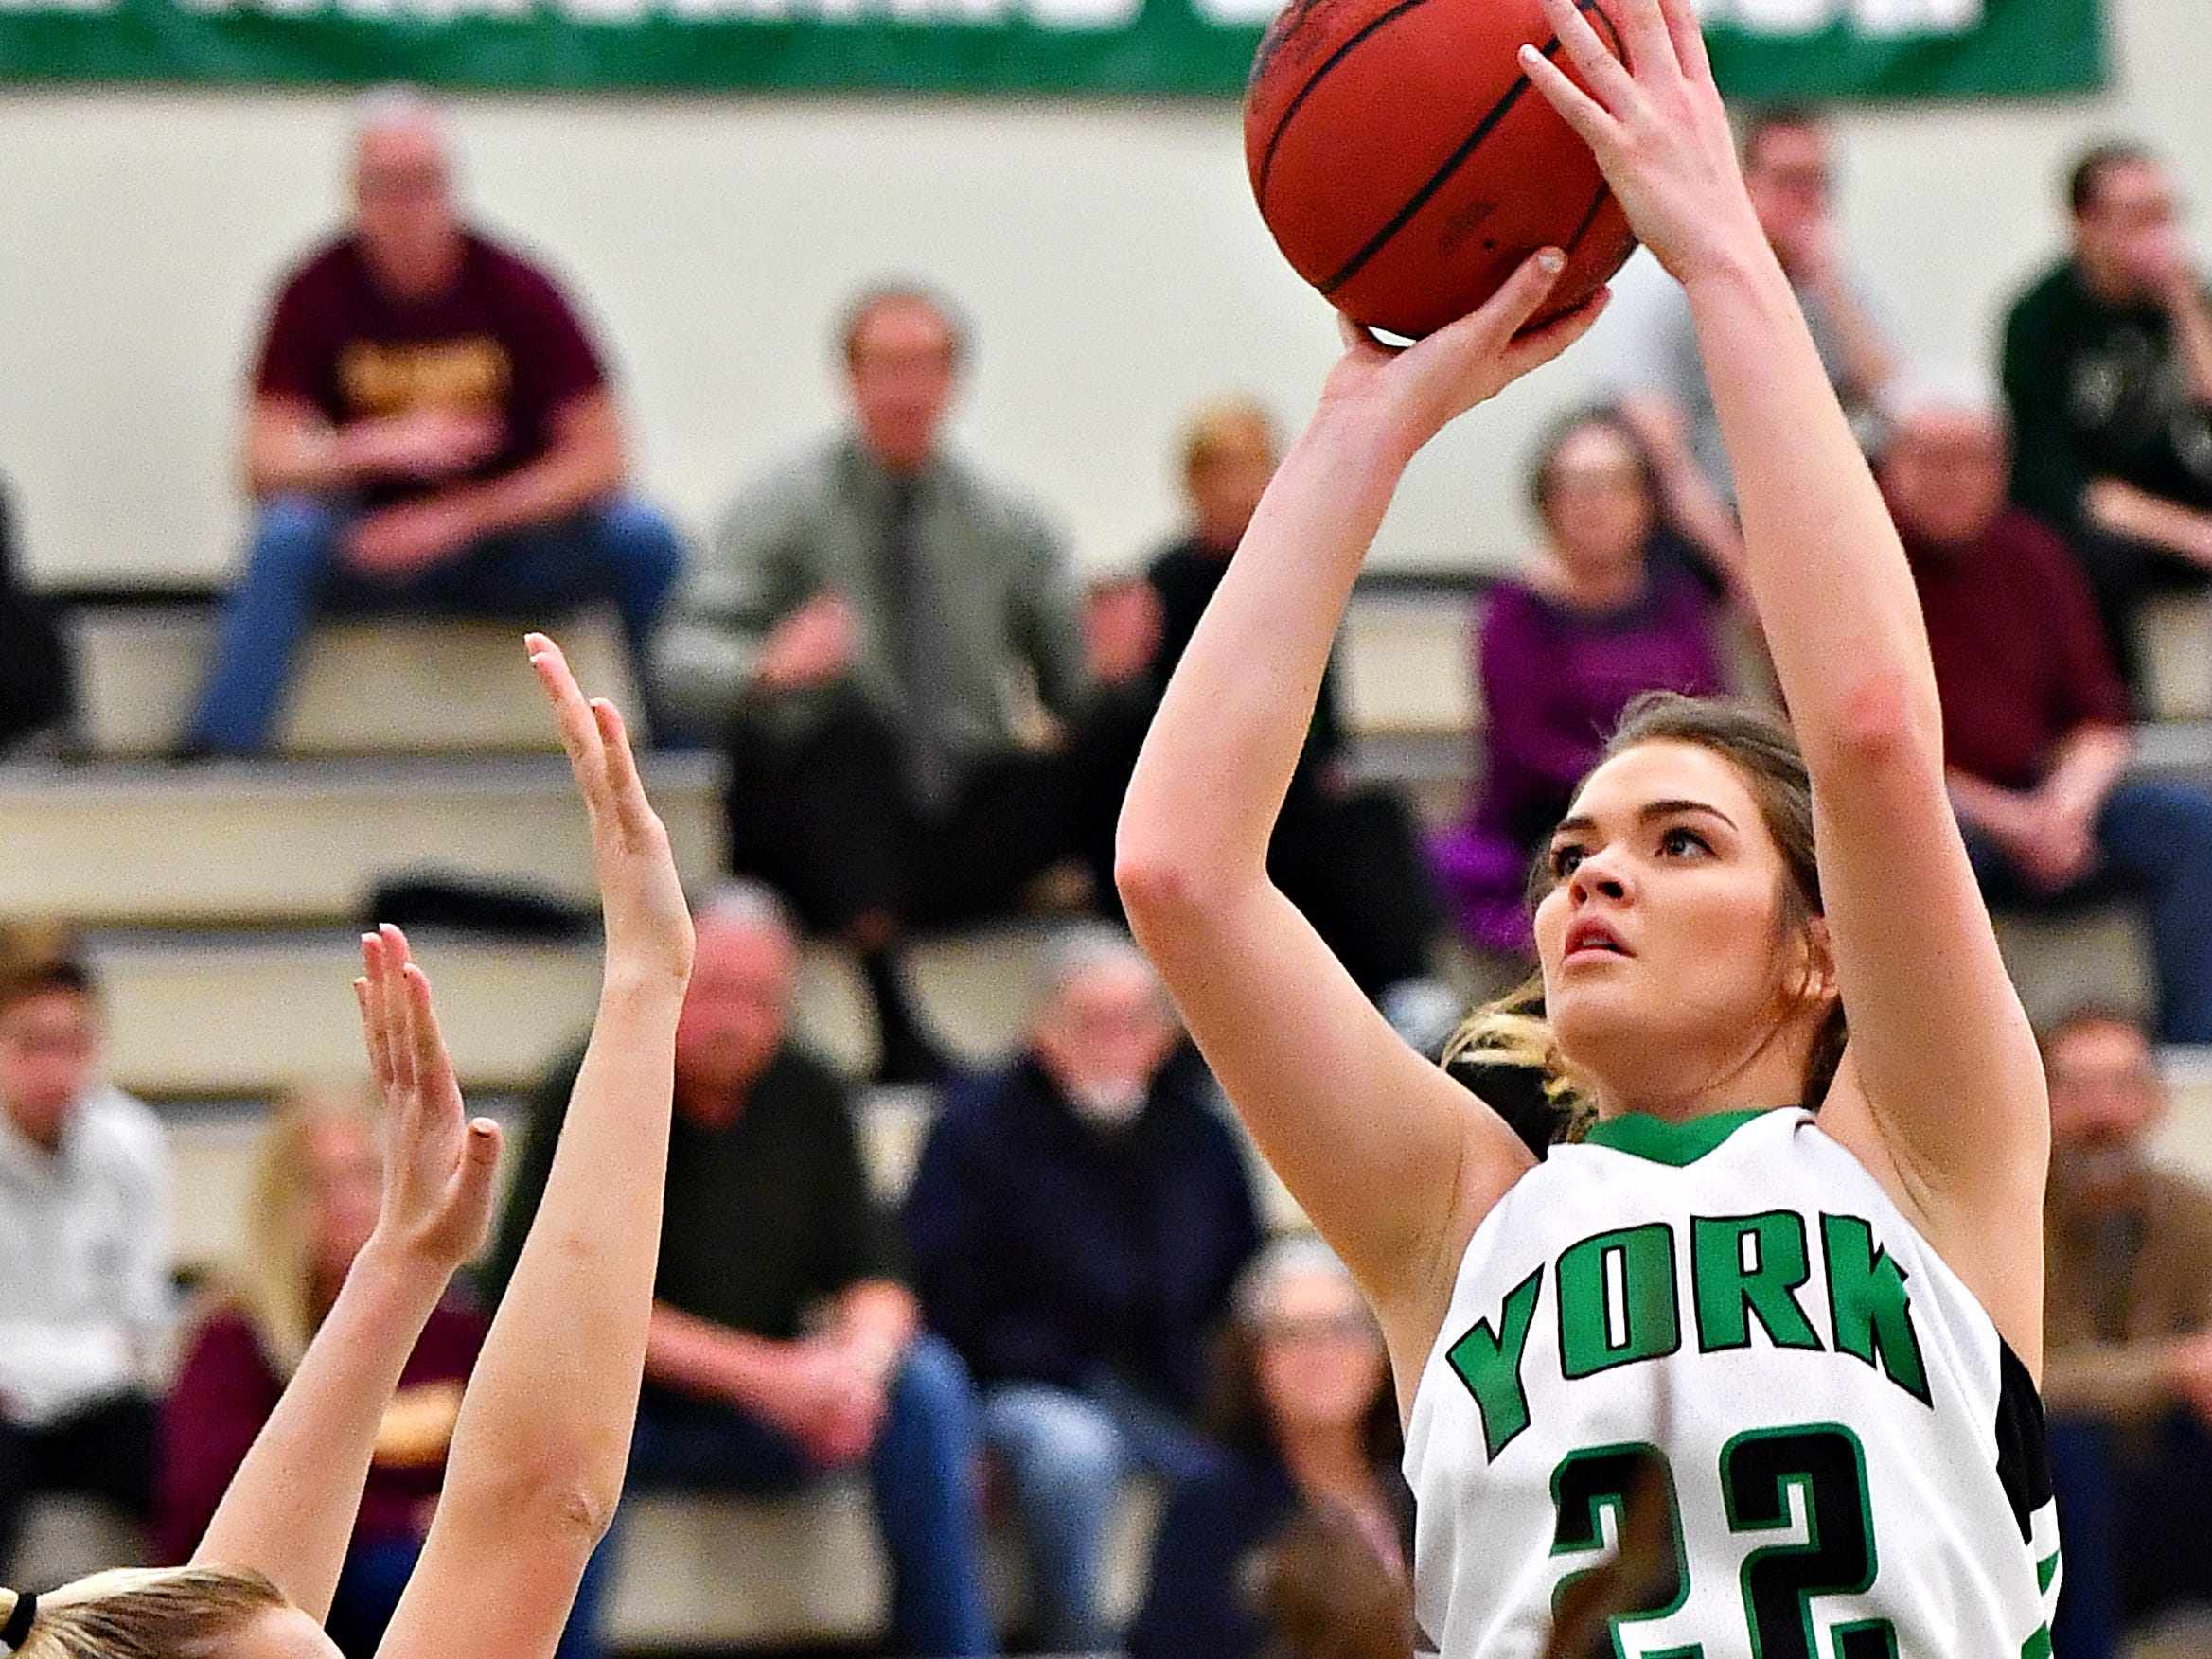 York College's Katie McGowan lines up her shot as Salisbury defends during women's basketball action at Grumbacher Sport and Fitness Center at York College of Pennsylvania in Spring Garden Township, Wednesday, Feb. 6, 2019. Dawn J. Sagert photo